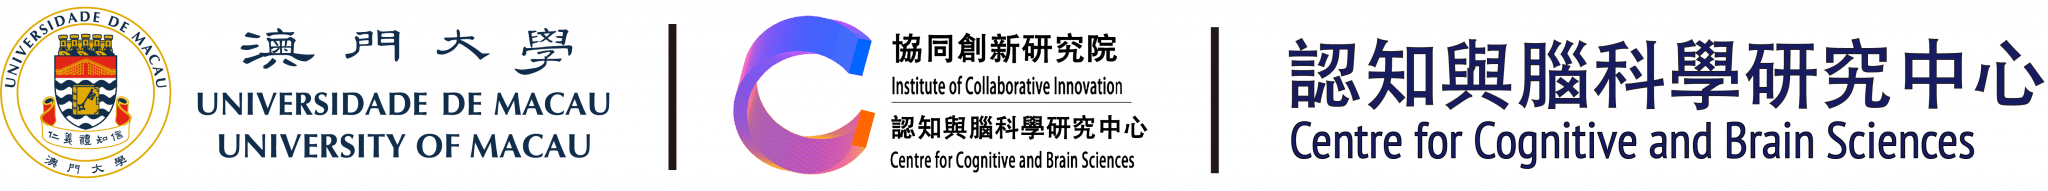 University of Macau |  Centre for Cognition and Brain Science Logo